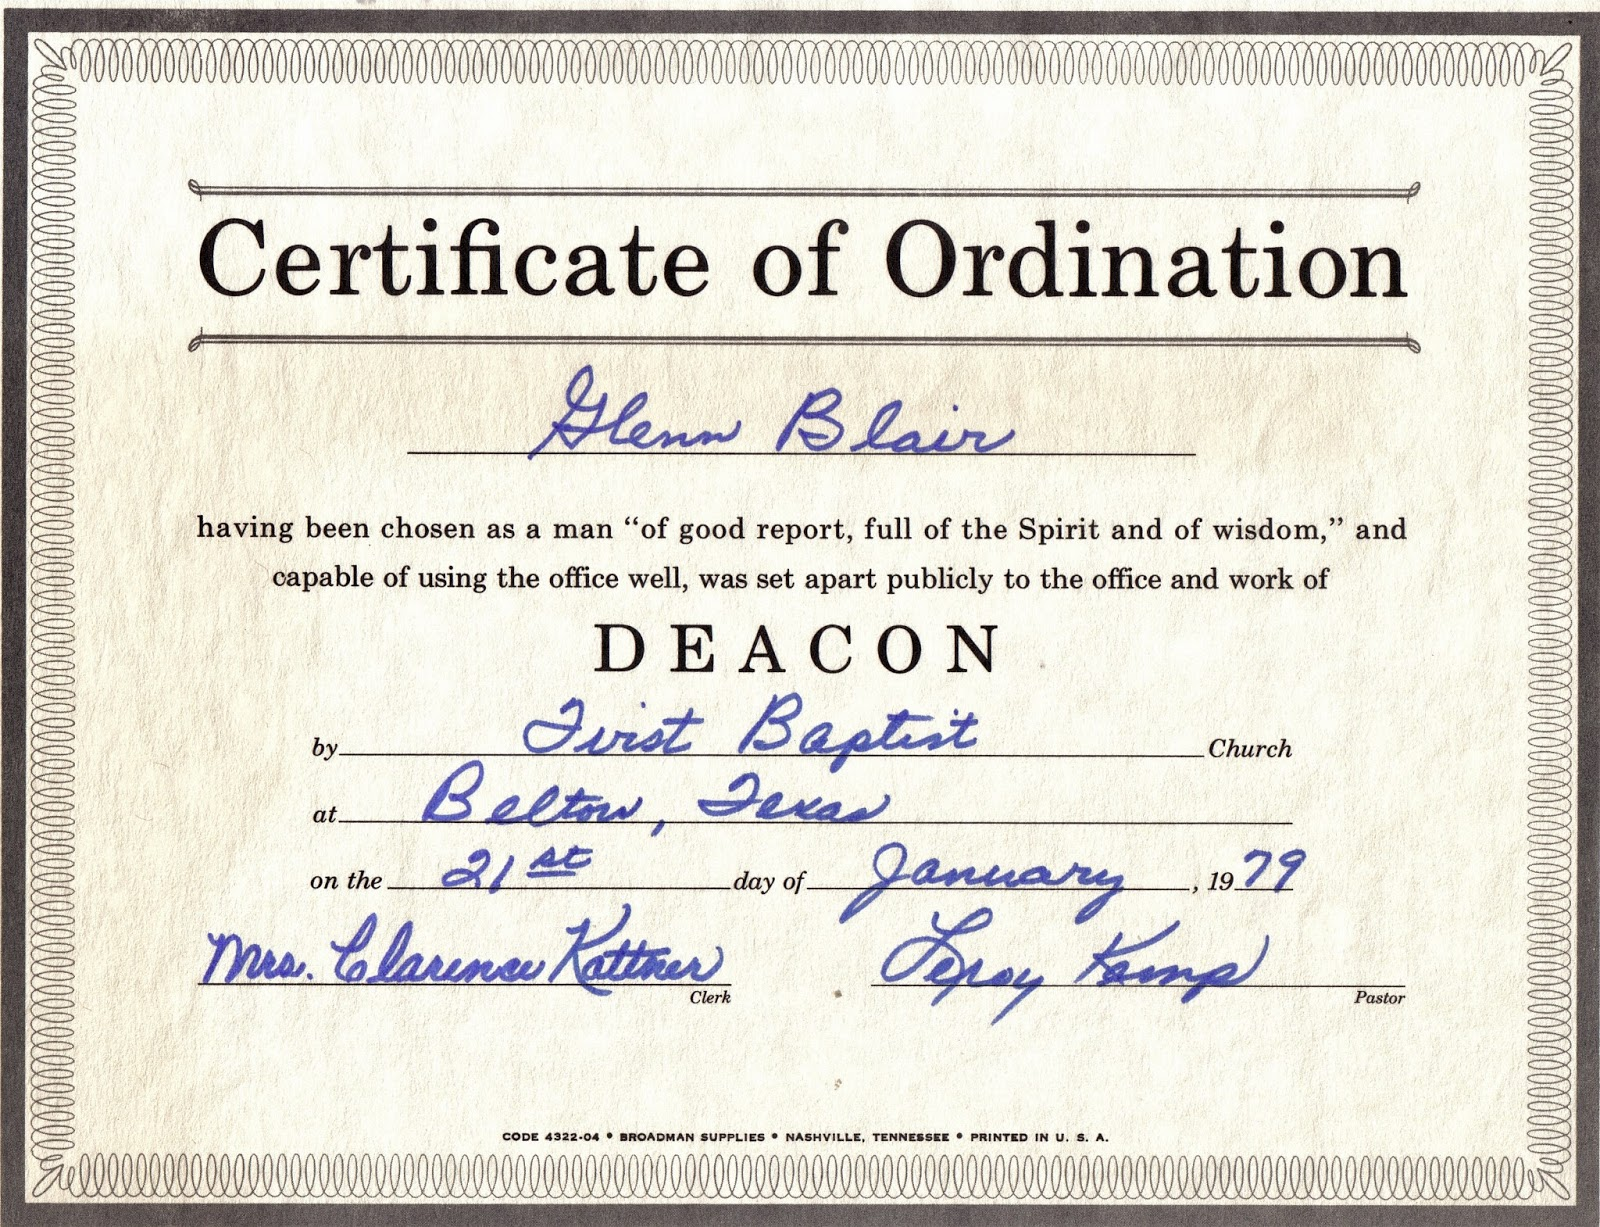 The family history of billy blair robert glenn wanda jeannine digby blair life story hill for Deacon ordination certificate